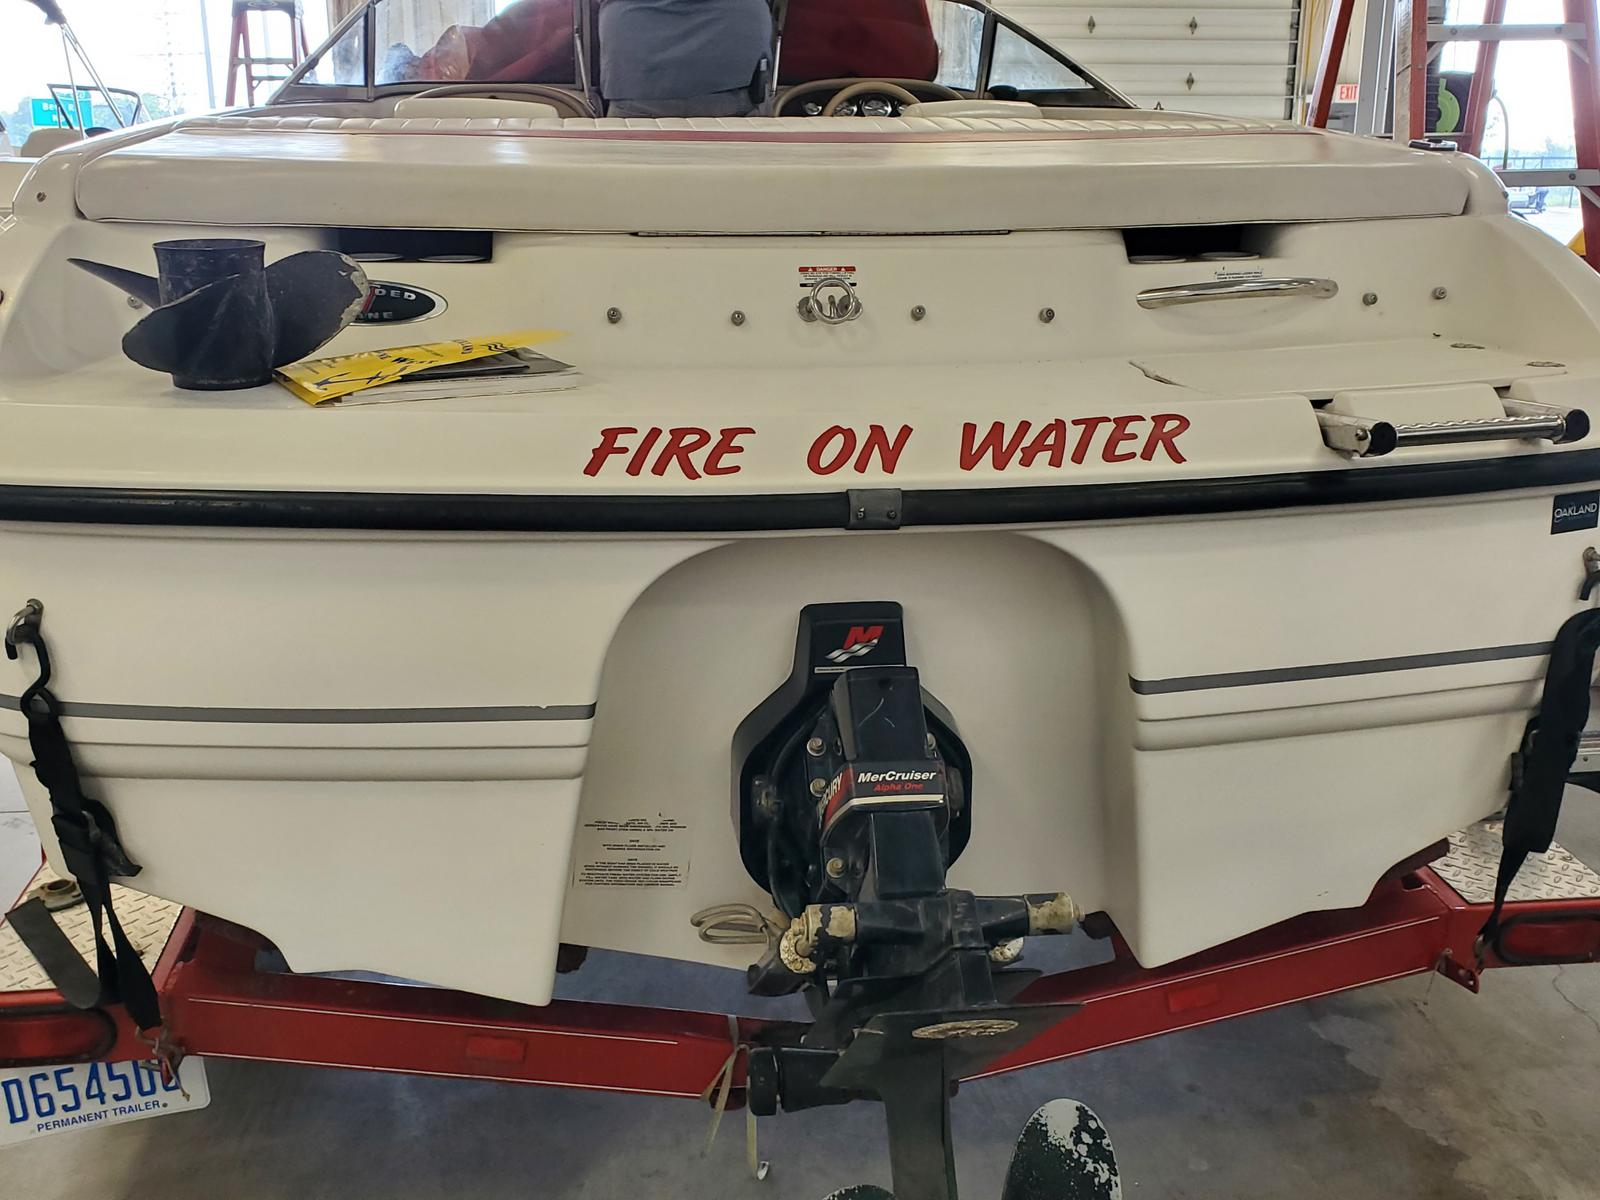 2002 Chaparral boat for sale, model of the boat is 200 SSE & Image # 4 of 6